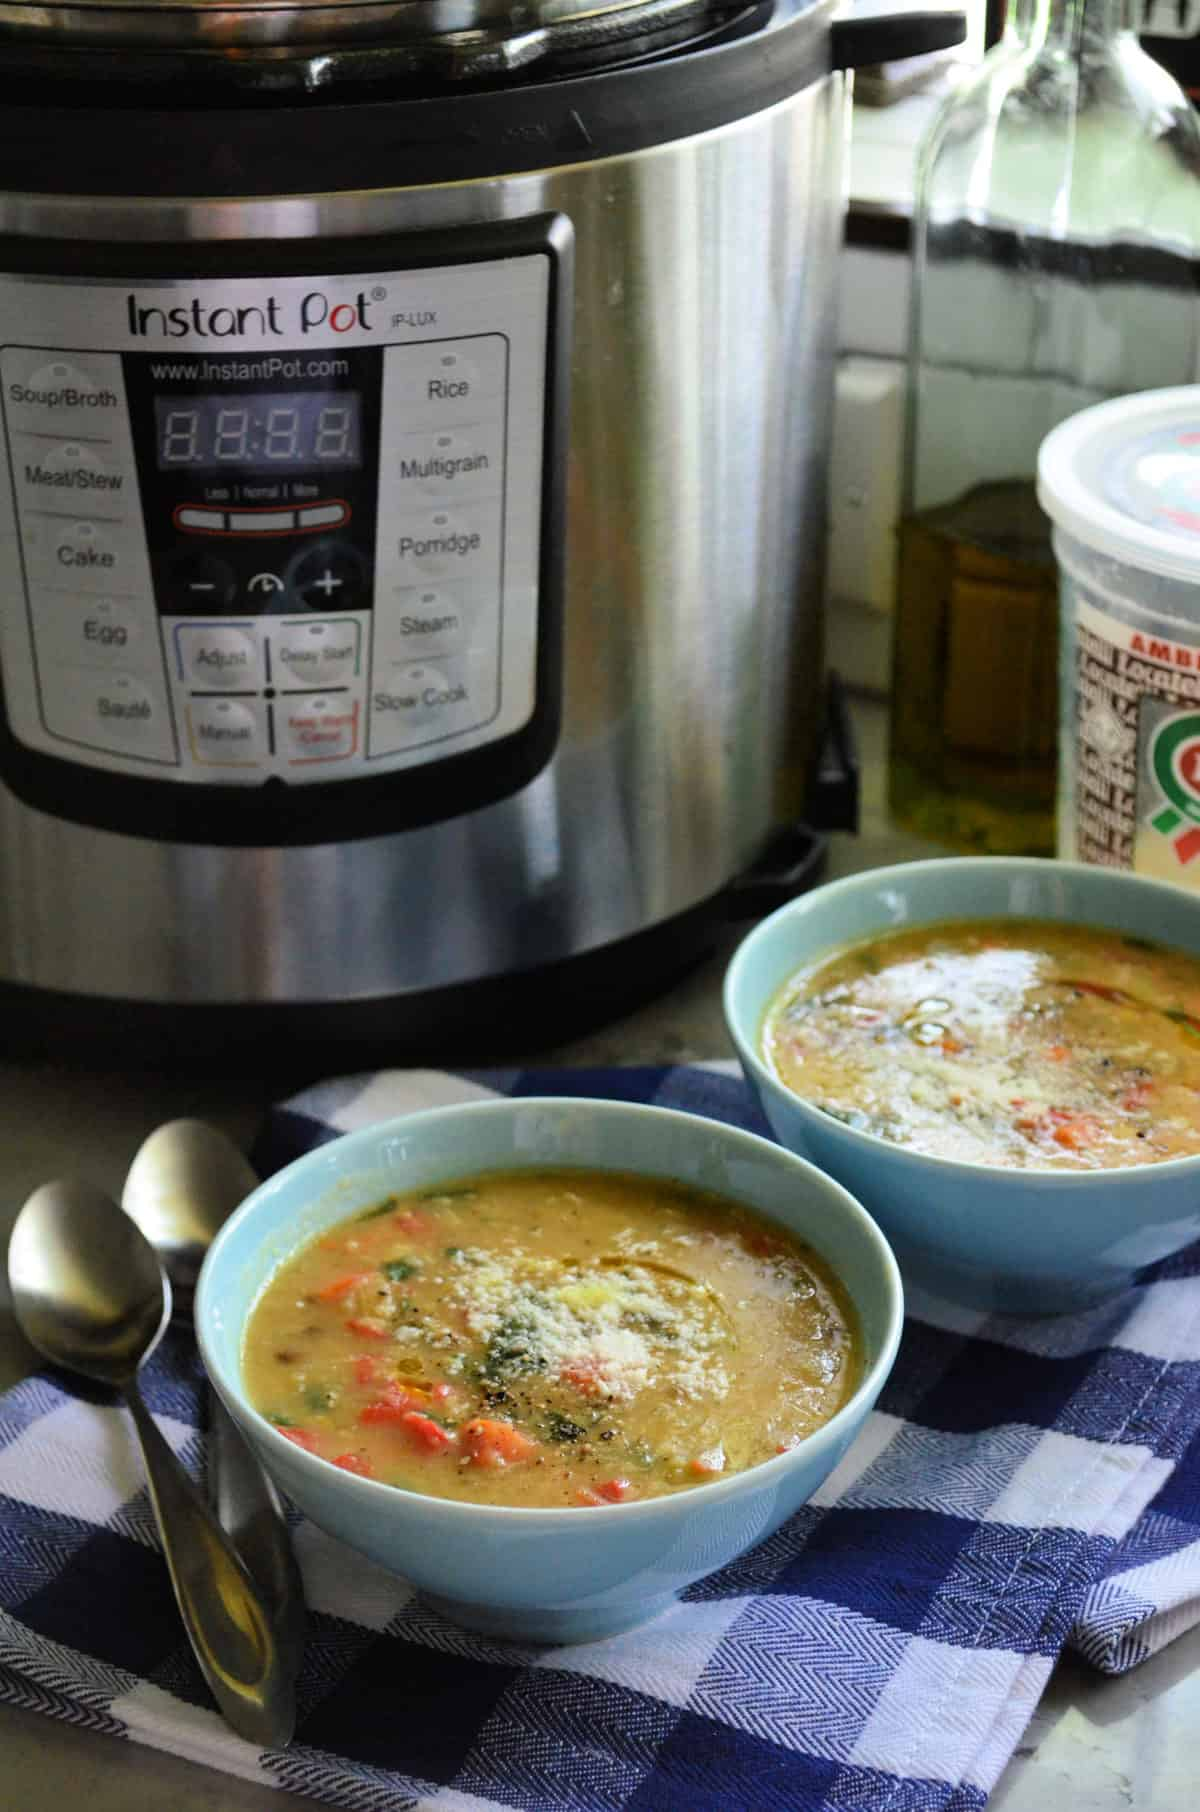 2 bowls of vegetable soup topped with parmesan cheese in front of instant pot with title text.